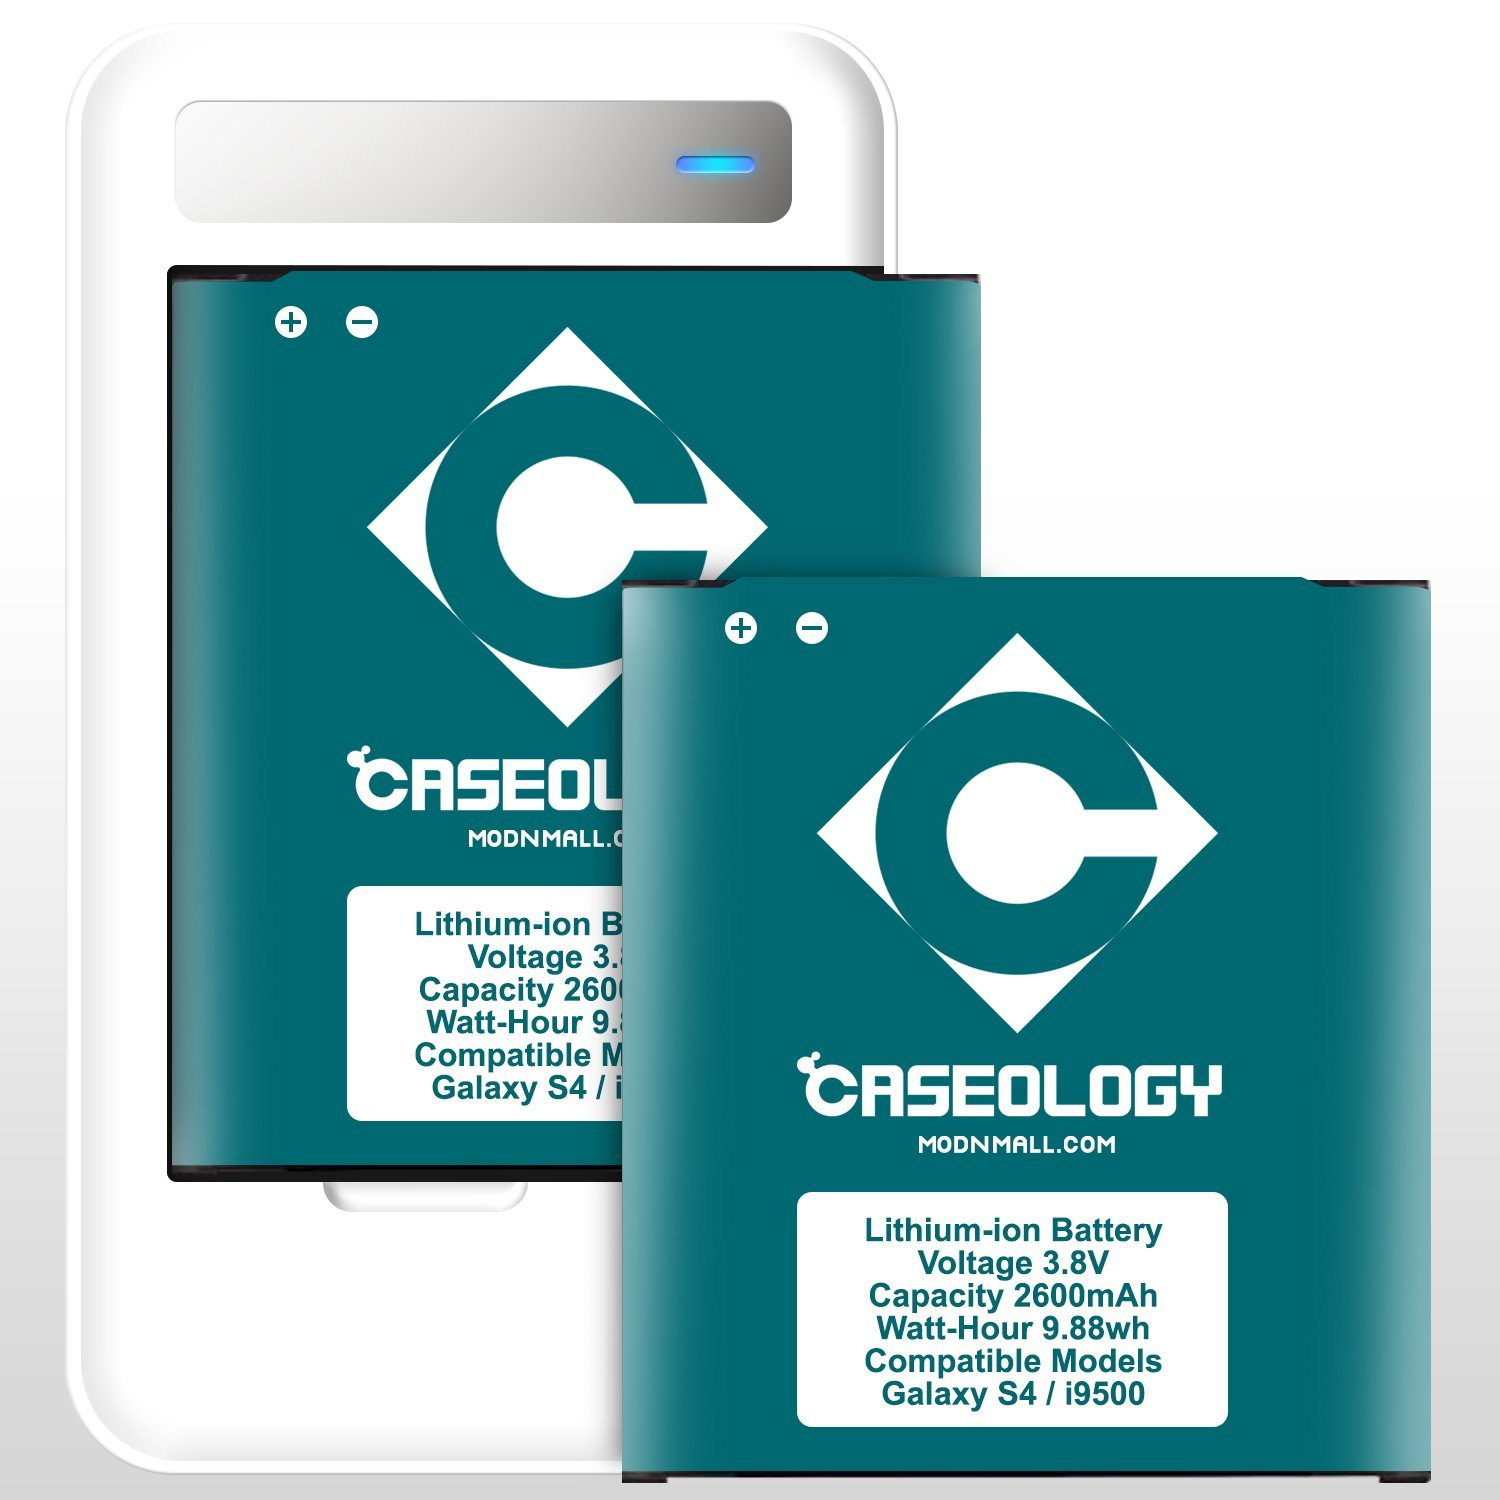 Galaxy S4 Battery, Caseology [2 Battery + Charger] Samsung Galaxy S4 Battery [Long-Lasting] 2 X 2600 mAh Li-ion Spare Battery Replacement Combo with Portable USB Port Travel Wall Charger Samsung Galaxy S4 Battery (Non-NFC) + [12-Month Warranty] (For Samsung Galaxy S4 Verizon, AT&T Sprint, T-mobile,